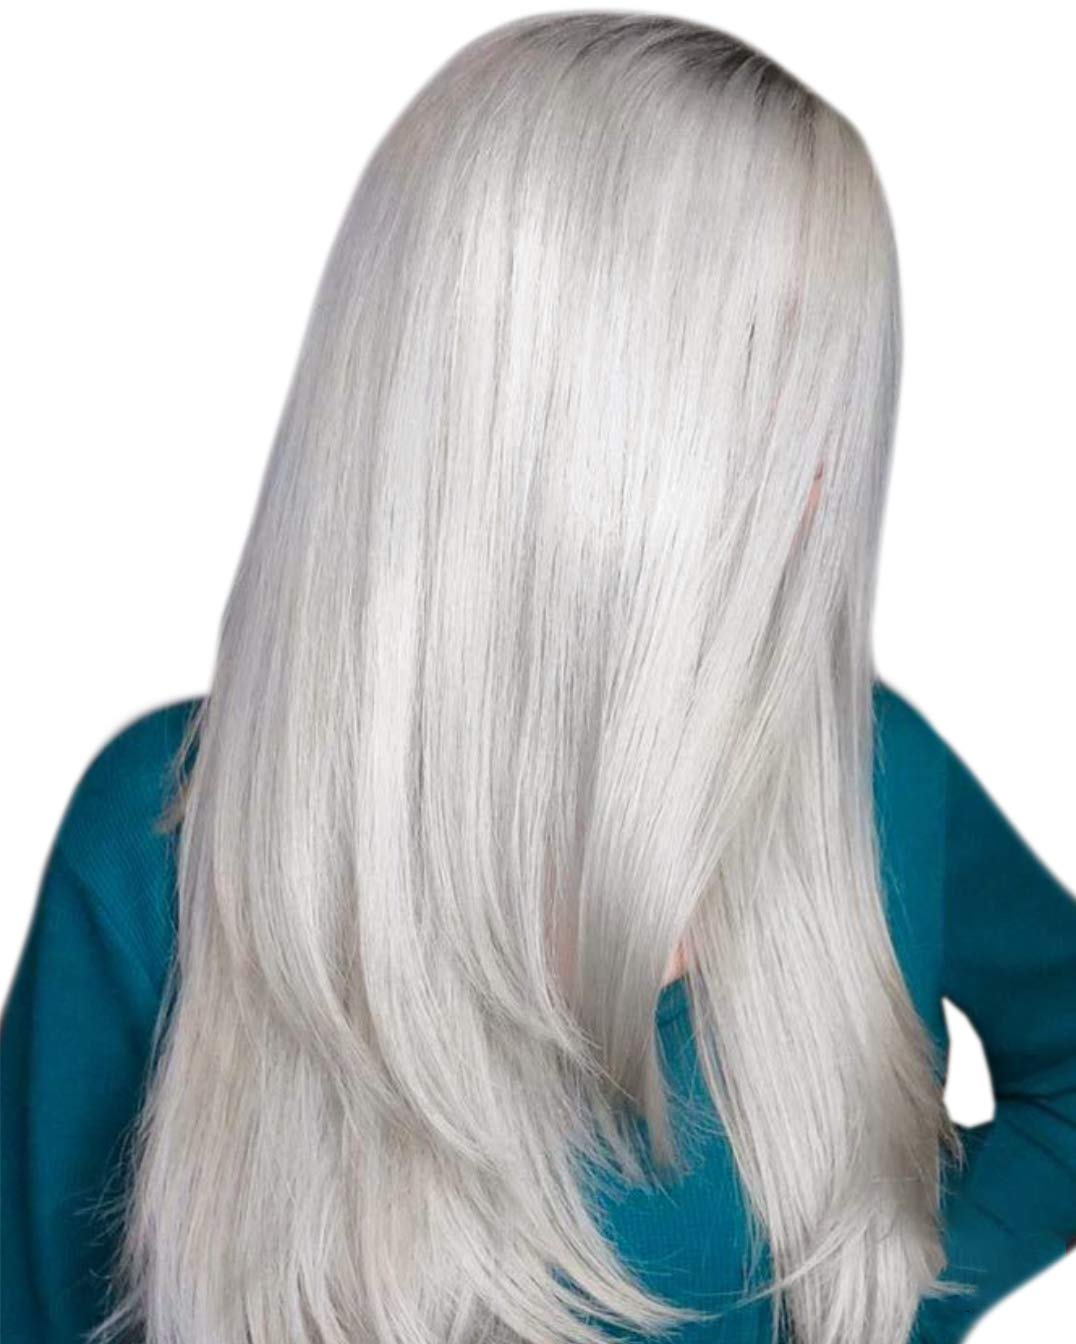 Hetto Tape on Extensions Real Hair #60A White Blonde Natural Huamn Hair 100% Glue in Extensions 40g Double Sided Reusable Hair 14inch 20Pcs Hair Extensions for Thin Hair